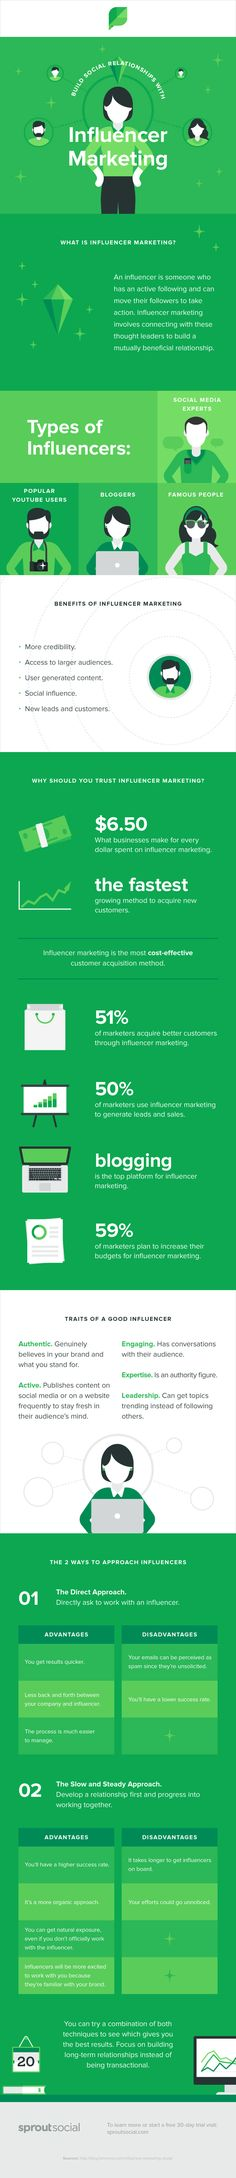 A Beginners Guide to Influencer Marketing #Infographic